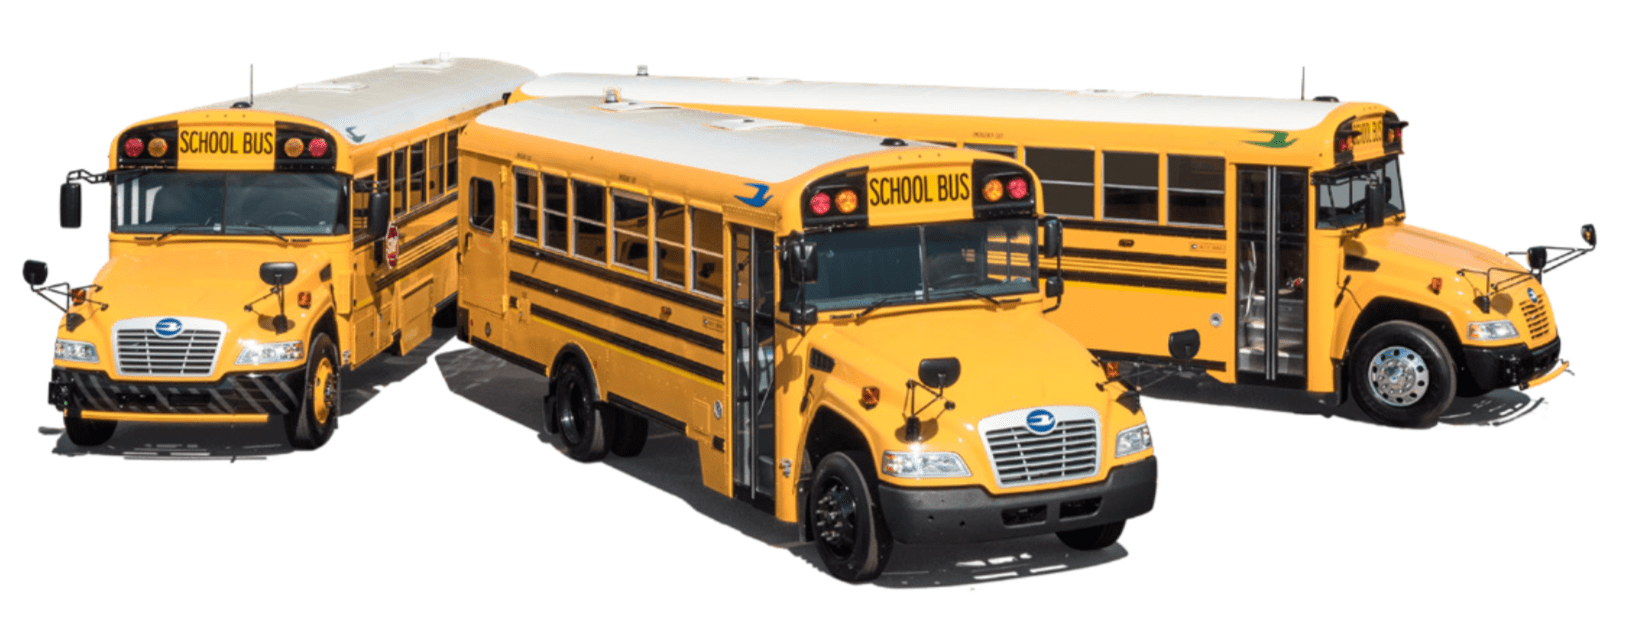 Blue Bird Bus >> Blue Bird Buses Being Equipped With Electronic Stability Control